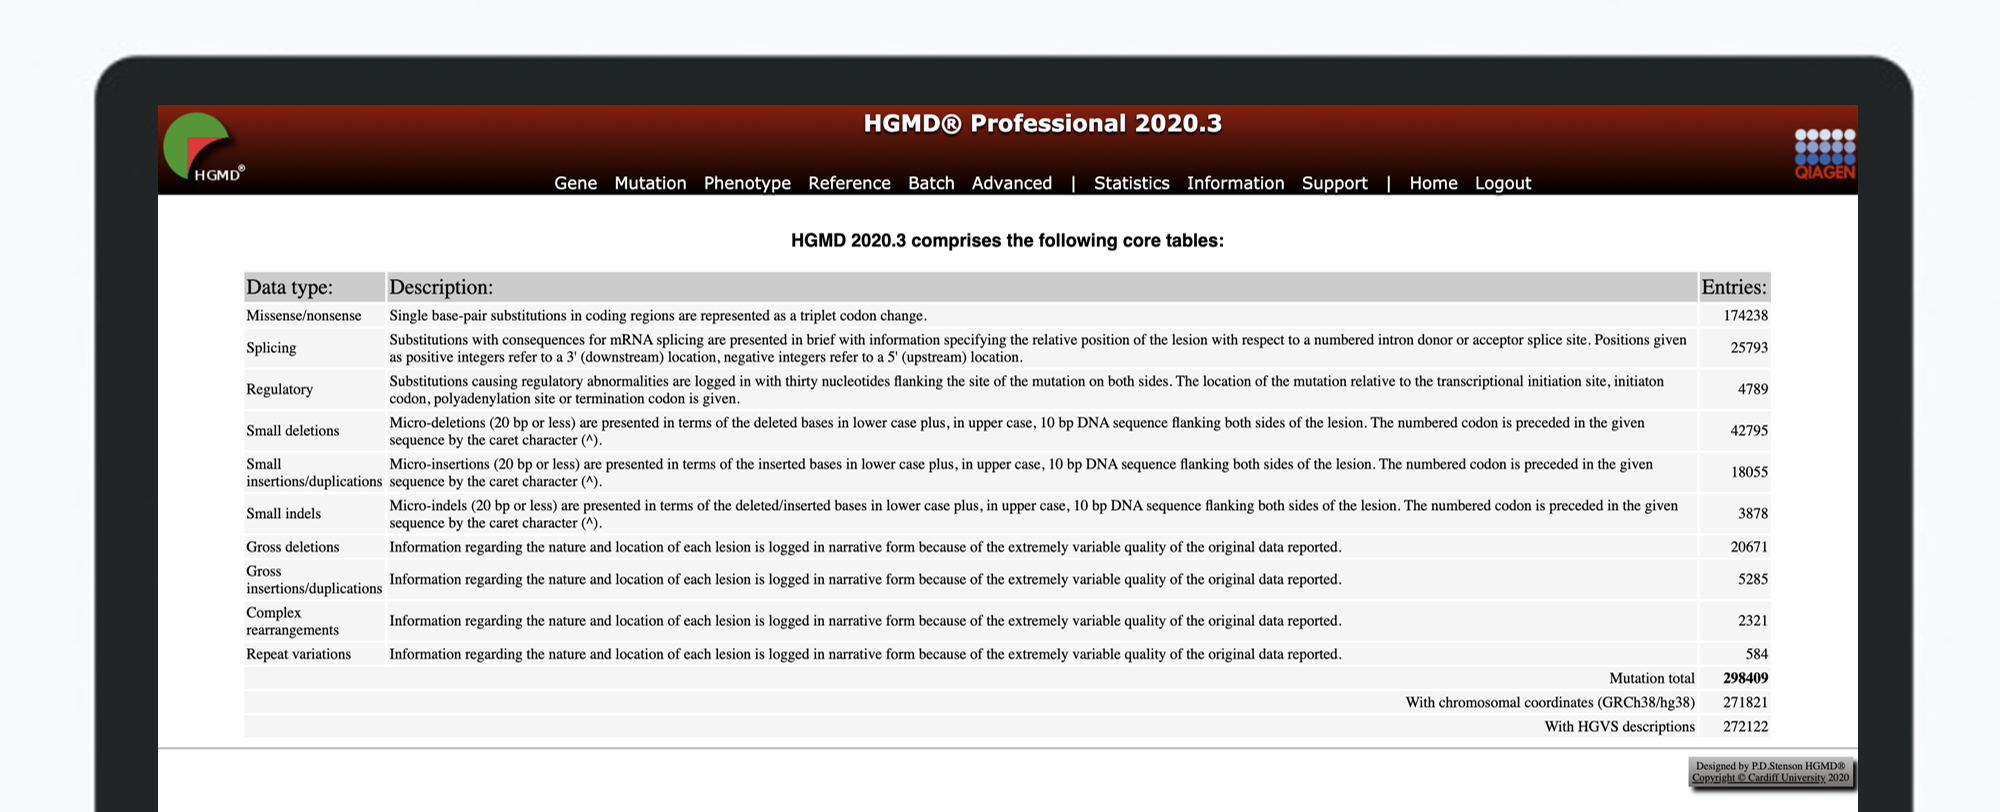 HGMD Professional 2020.3 Release